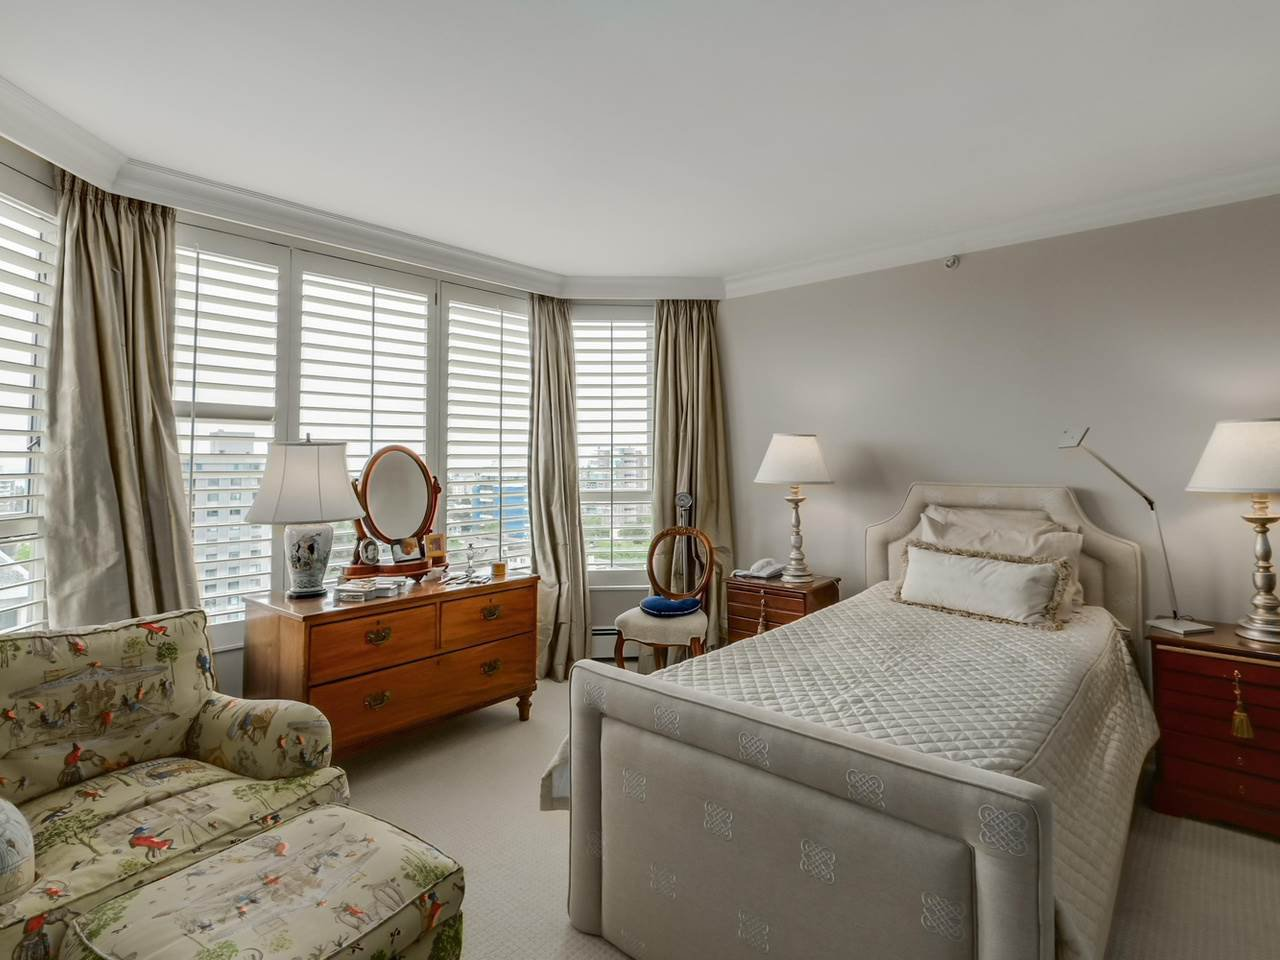 """Photo 14: Photos: PH1 2108 W 38TH Avenue in Vancouver: Kerrisdale Condo for sale in """"THE WILSHIRE"""" (Vancouver West)  : MLS®# R2072443"""